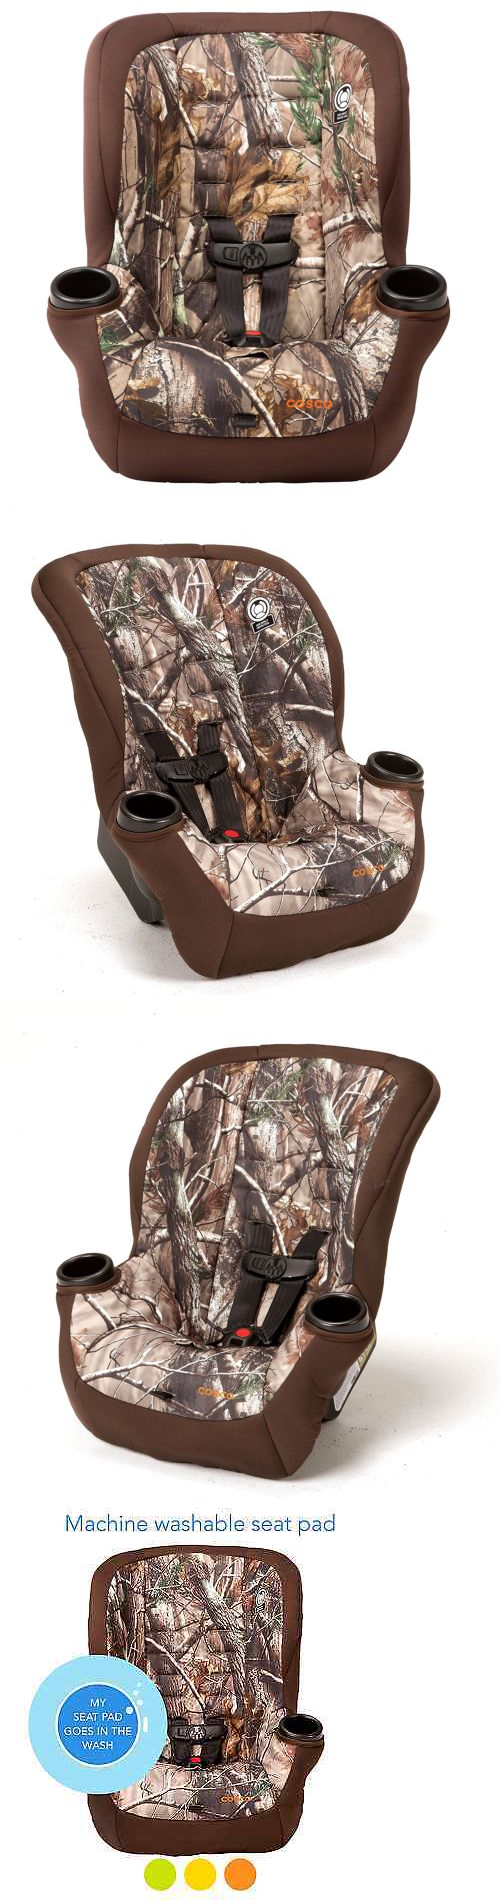 Baby Kid Stuff Convertible Car Seat Infant Toddler Carrier Chair Safety Realtree Camo Boy